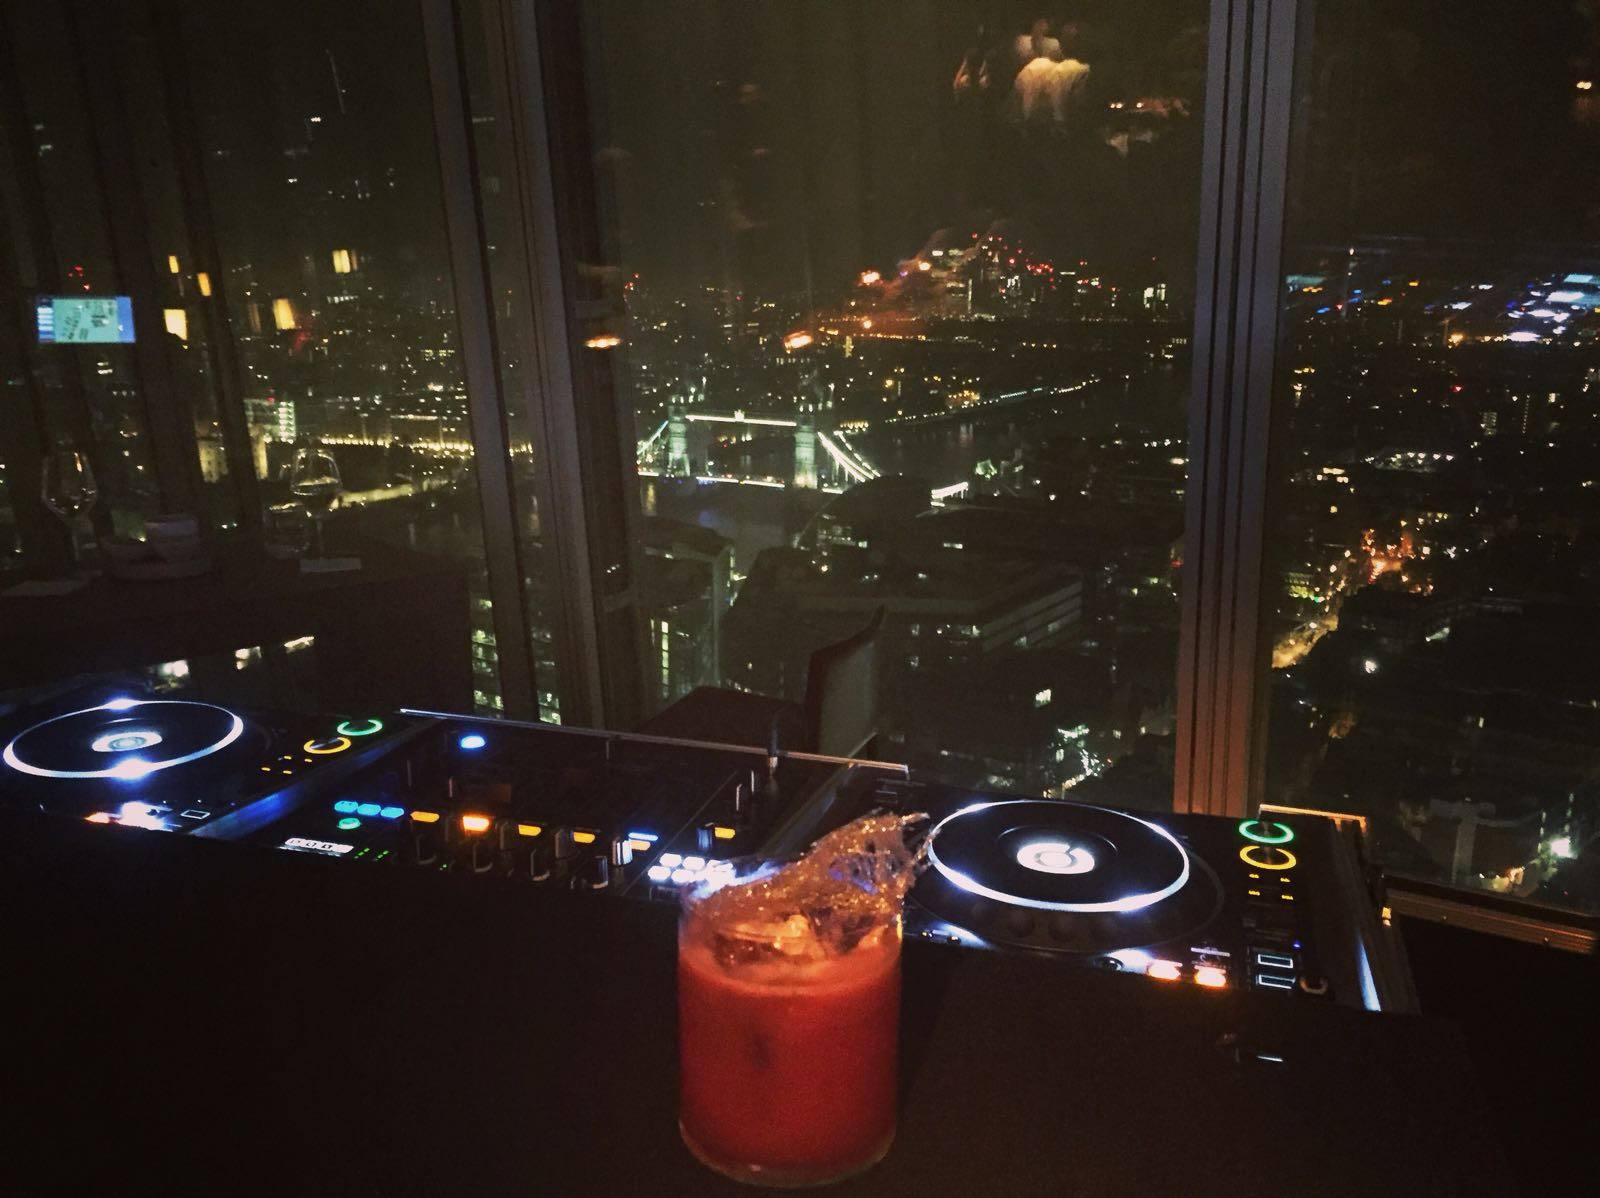 My monthly office - 35 floors up the Shard, London.